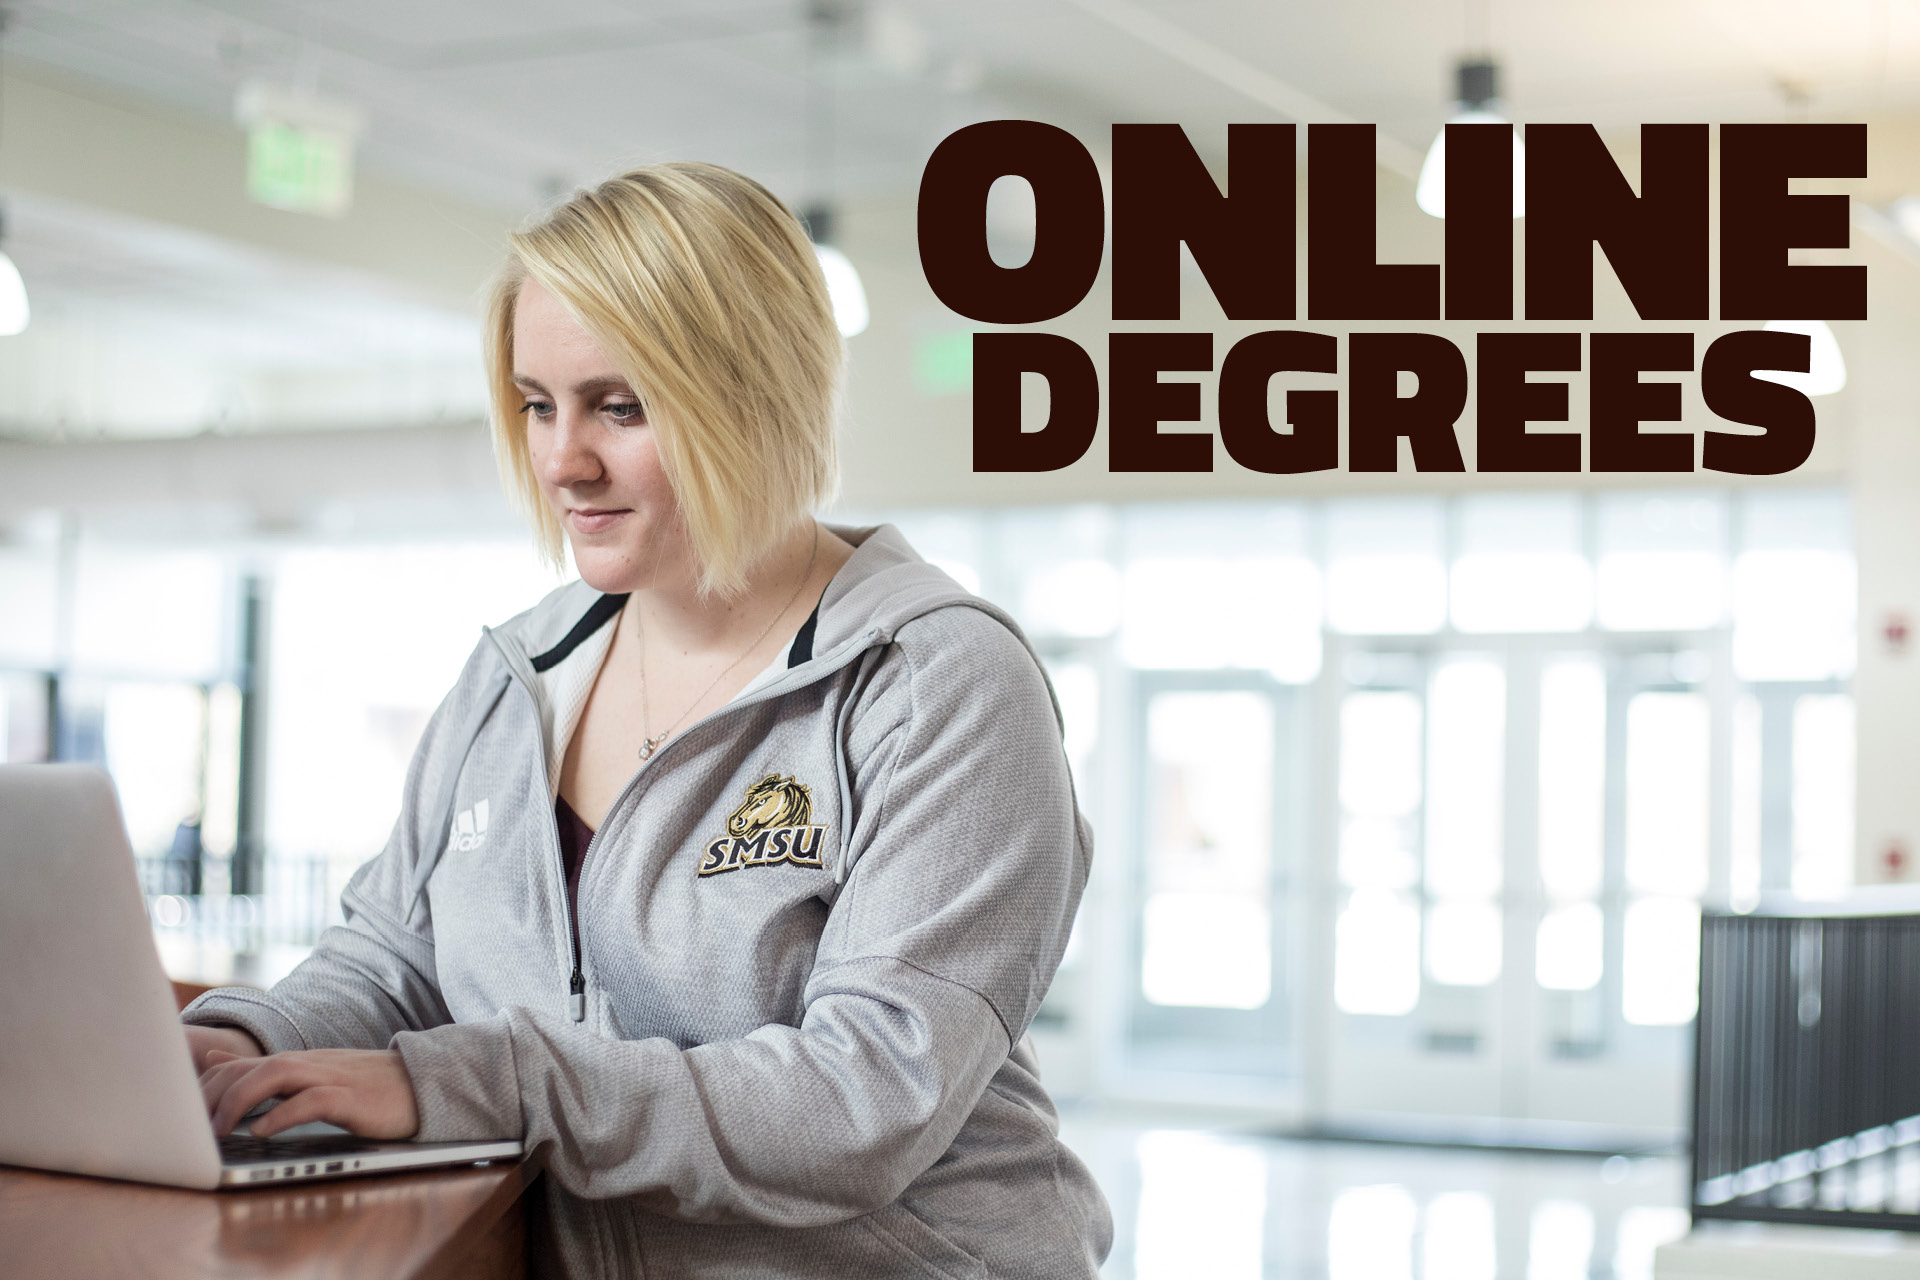 SMSU Online Degrees